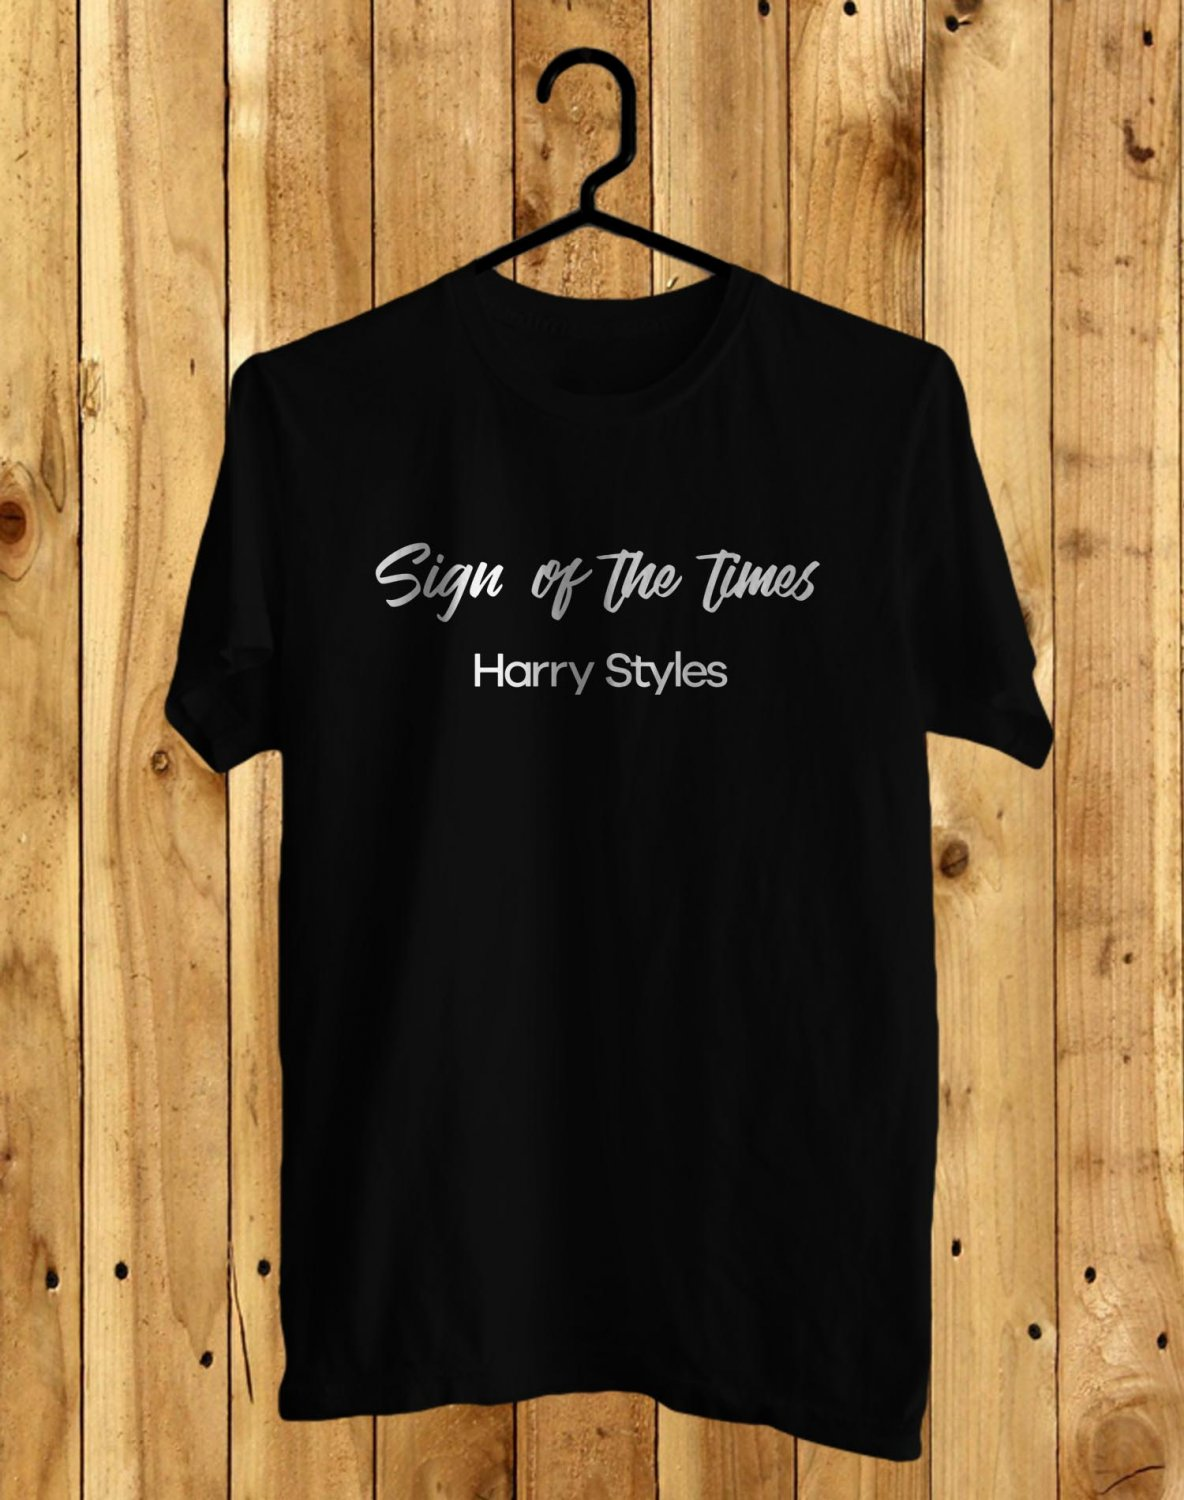 Harry Styles Live On Tour 2017 Black Tee's Front Side by Complexart z1